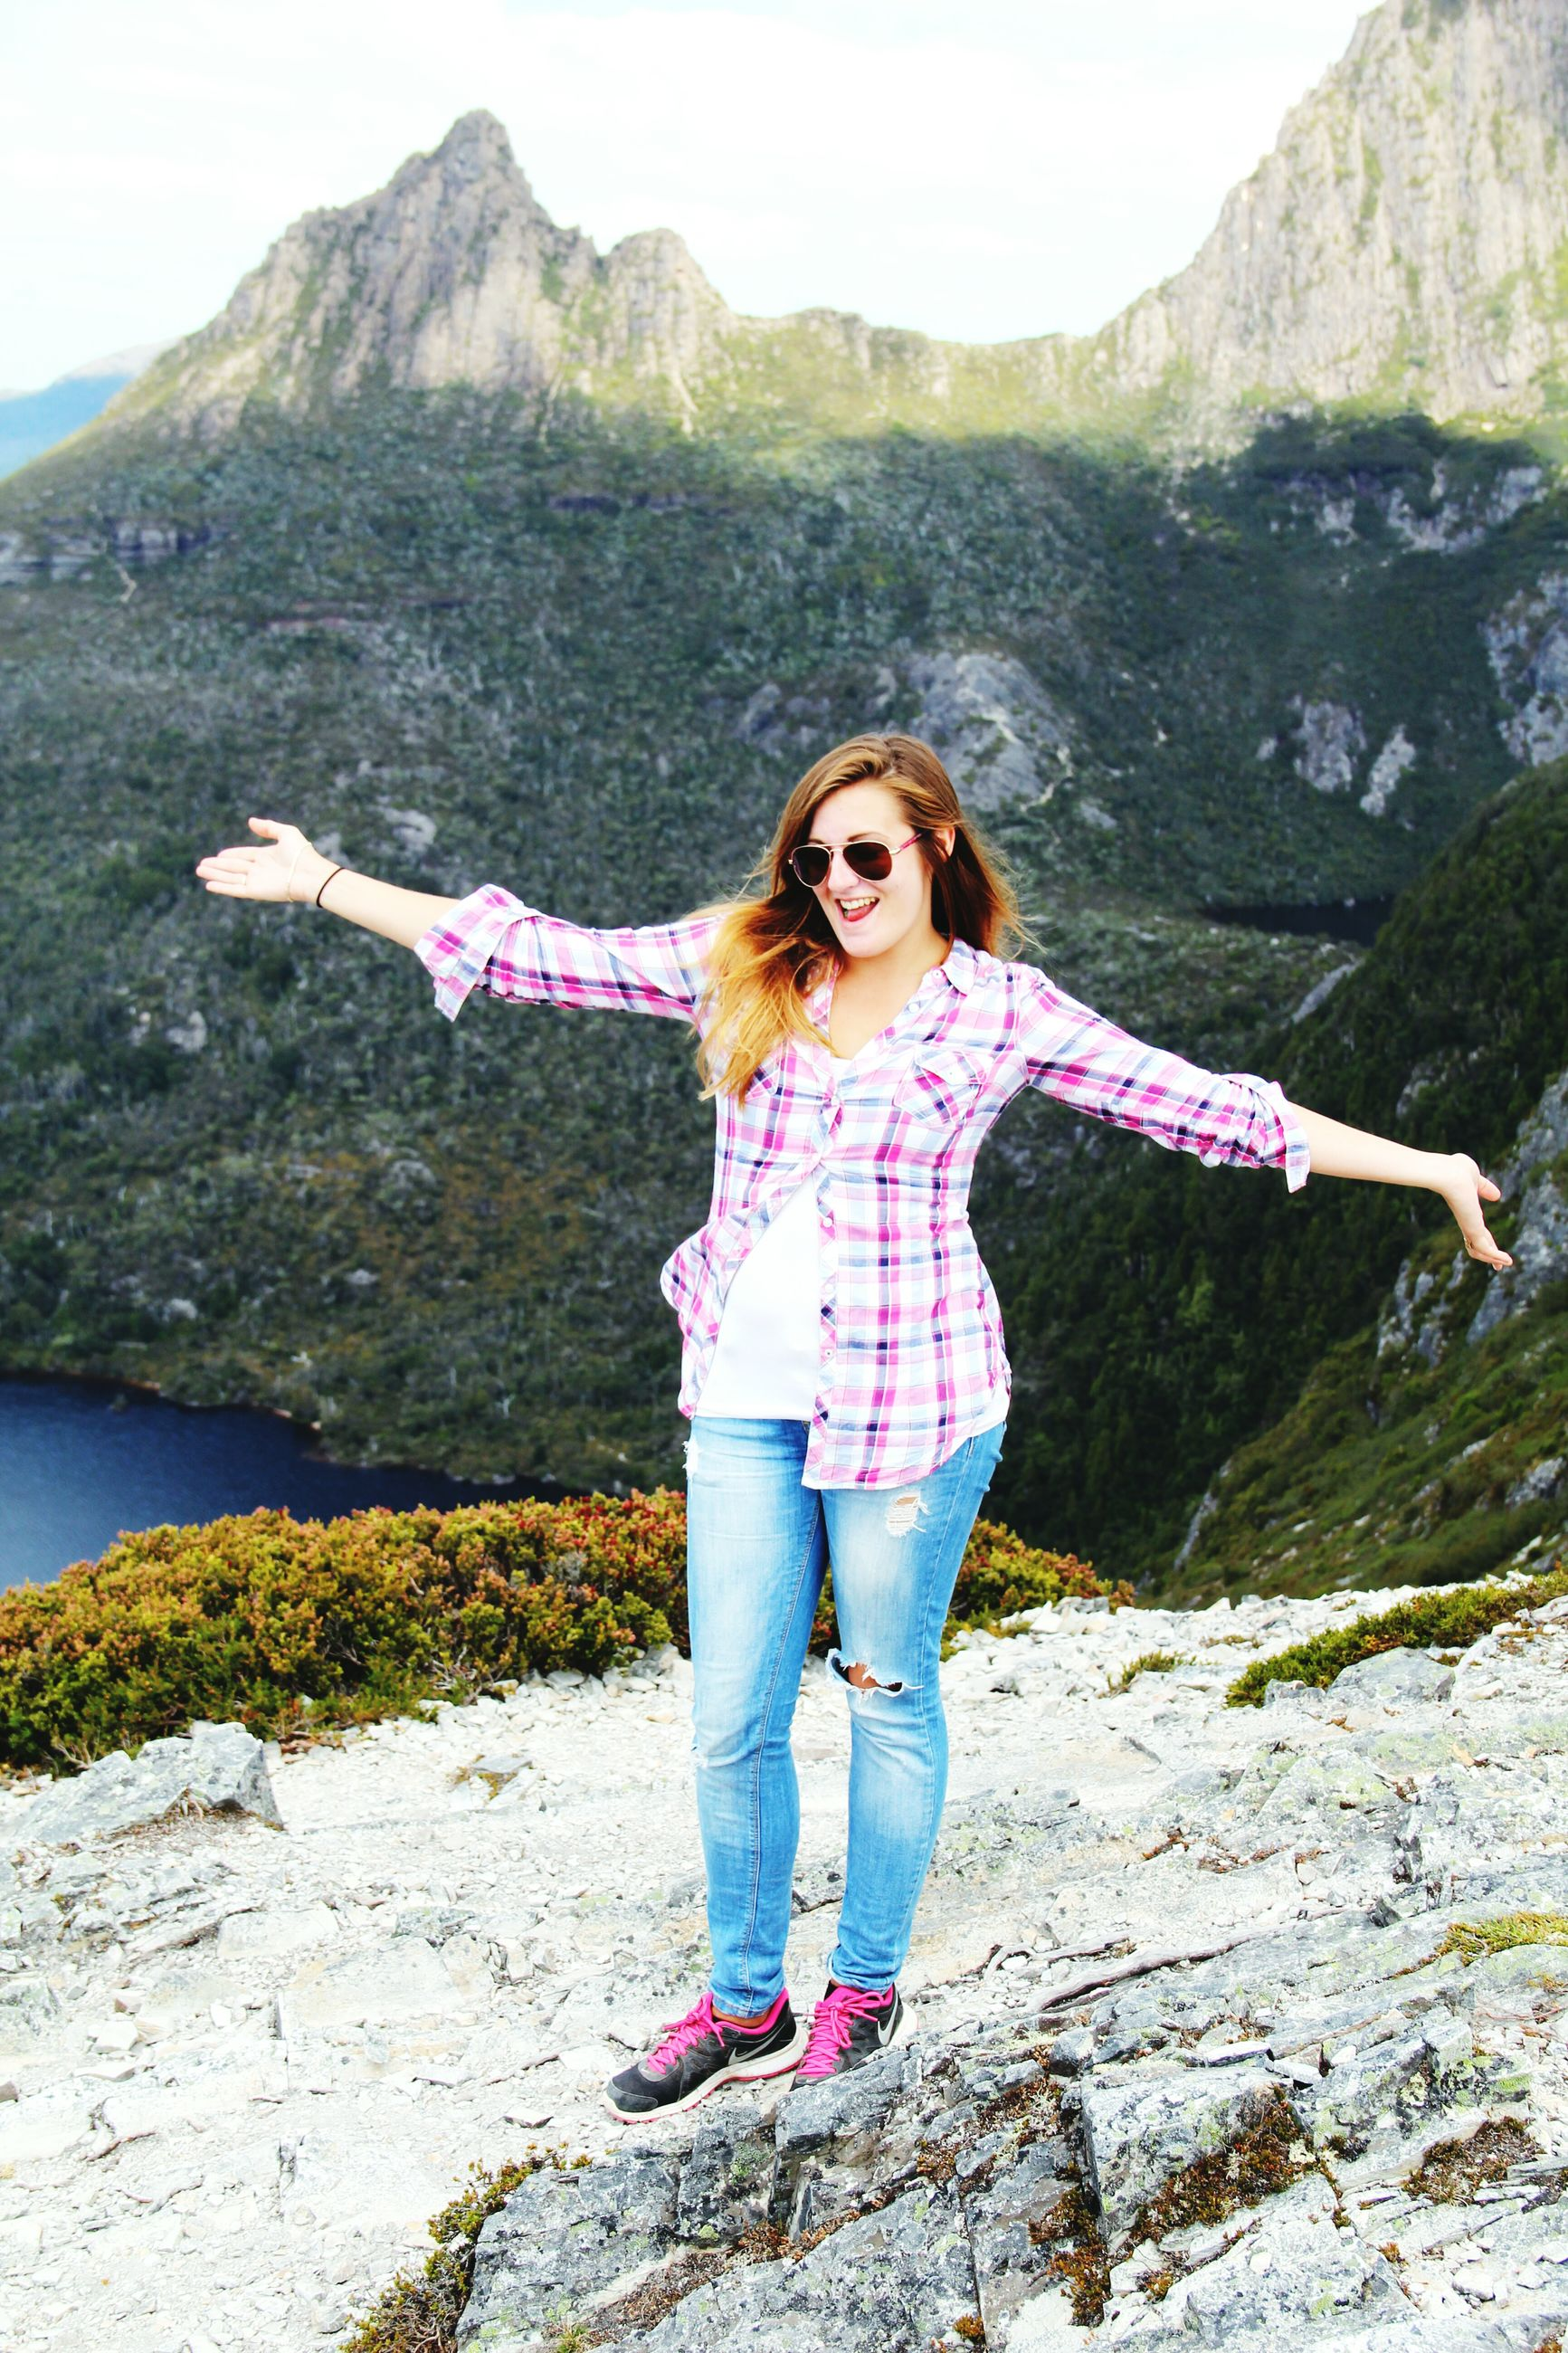 casual clothing, lifestyles, mountain, person, leisure activity, standing, full length, young adult, looking at camera, portrait, smiling, young women, front view, water, mountain range, three quarter length, happiness, nature